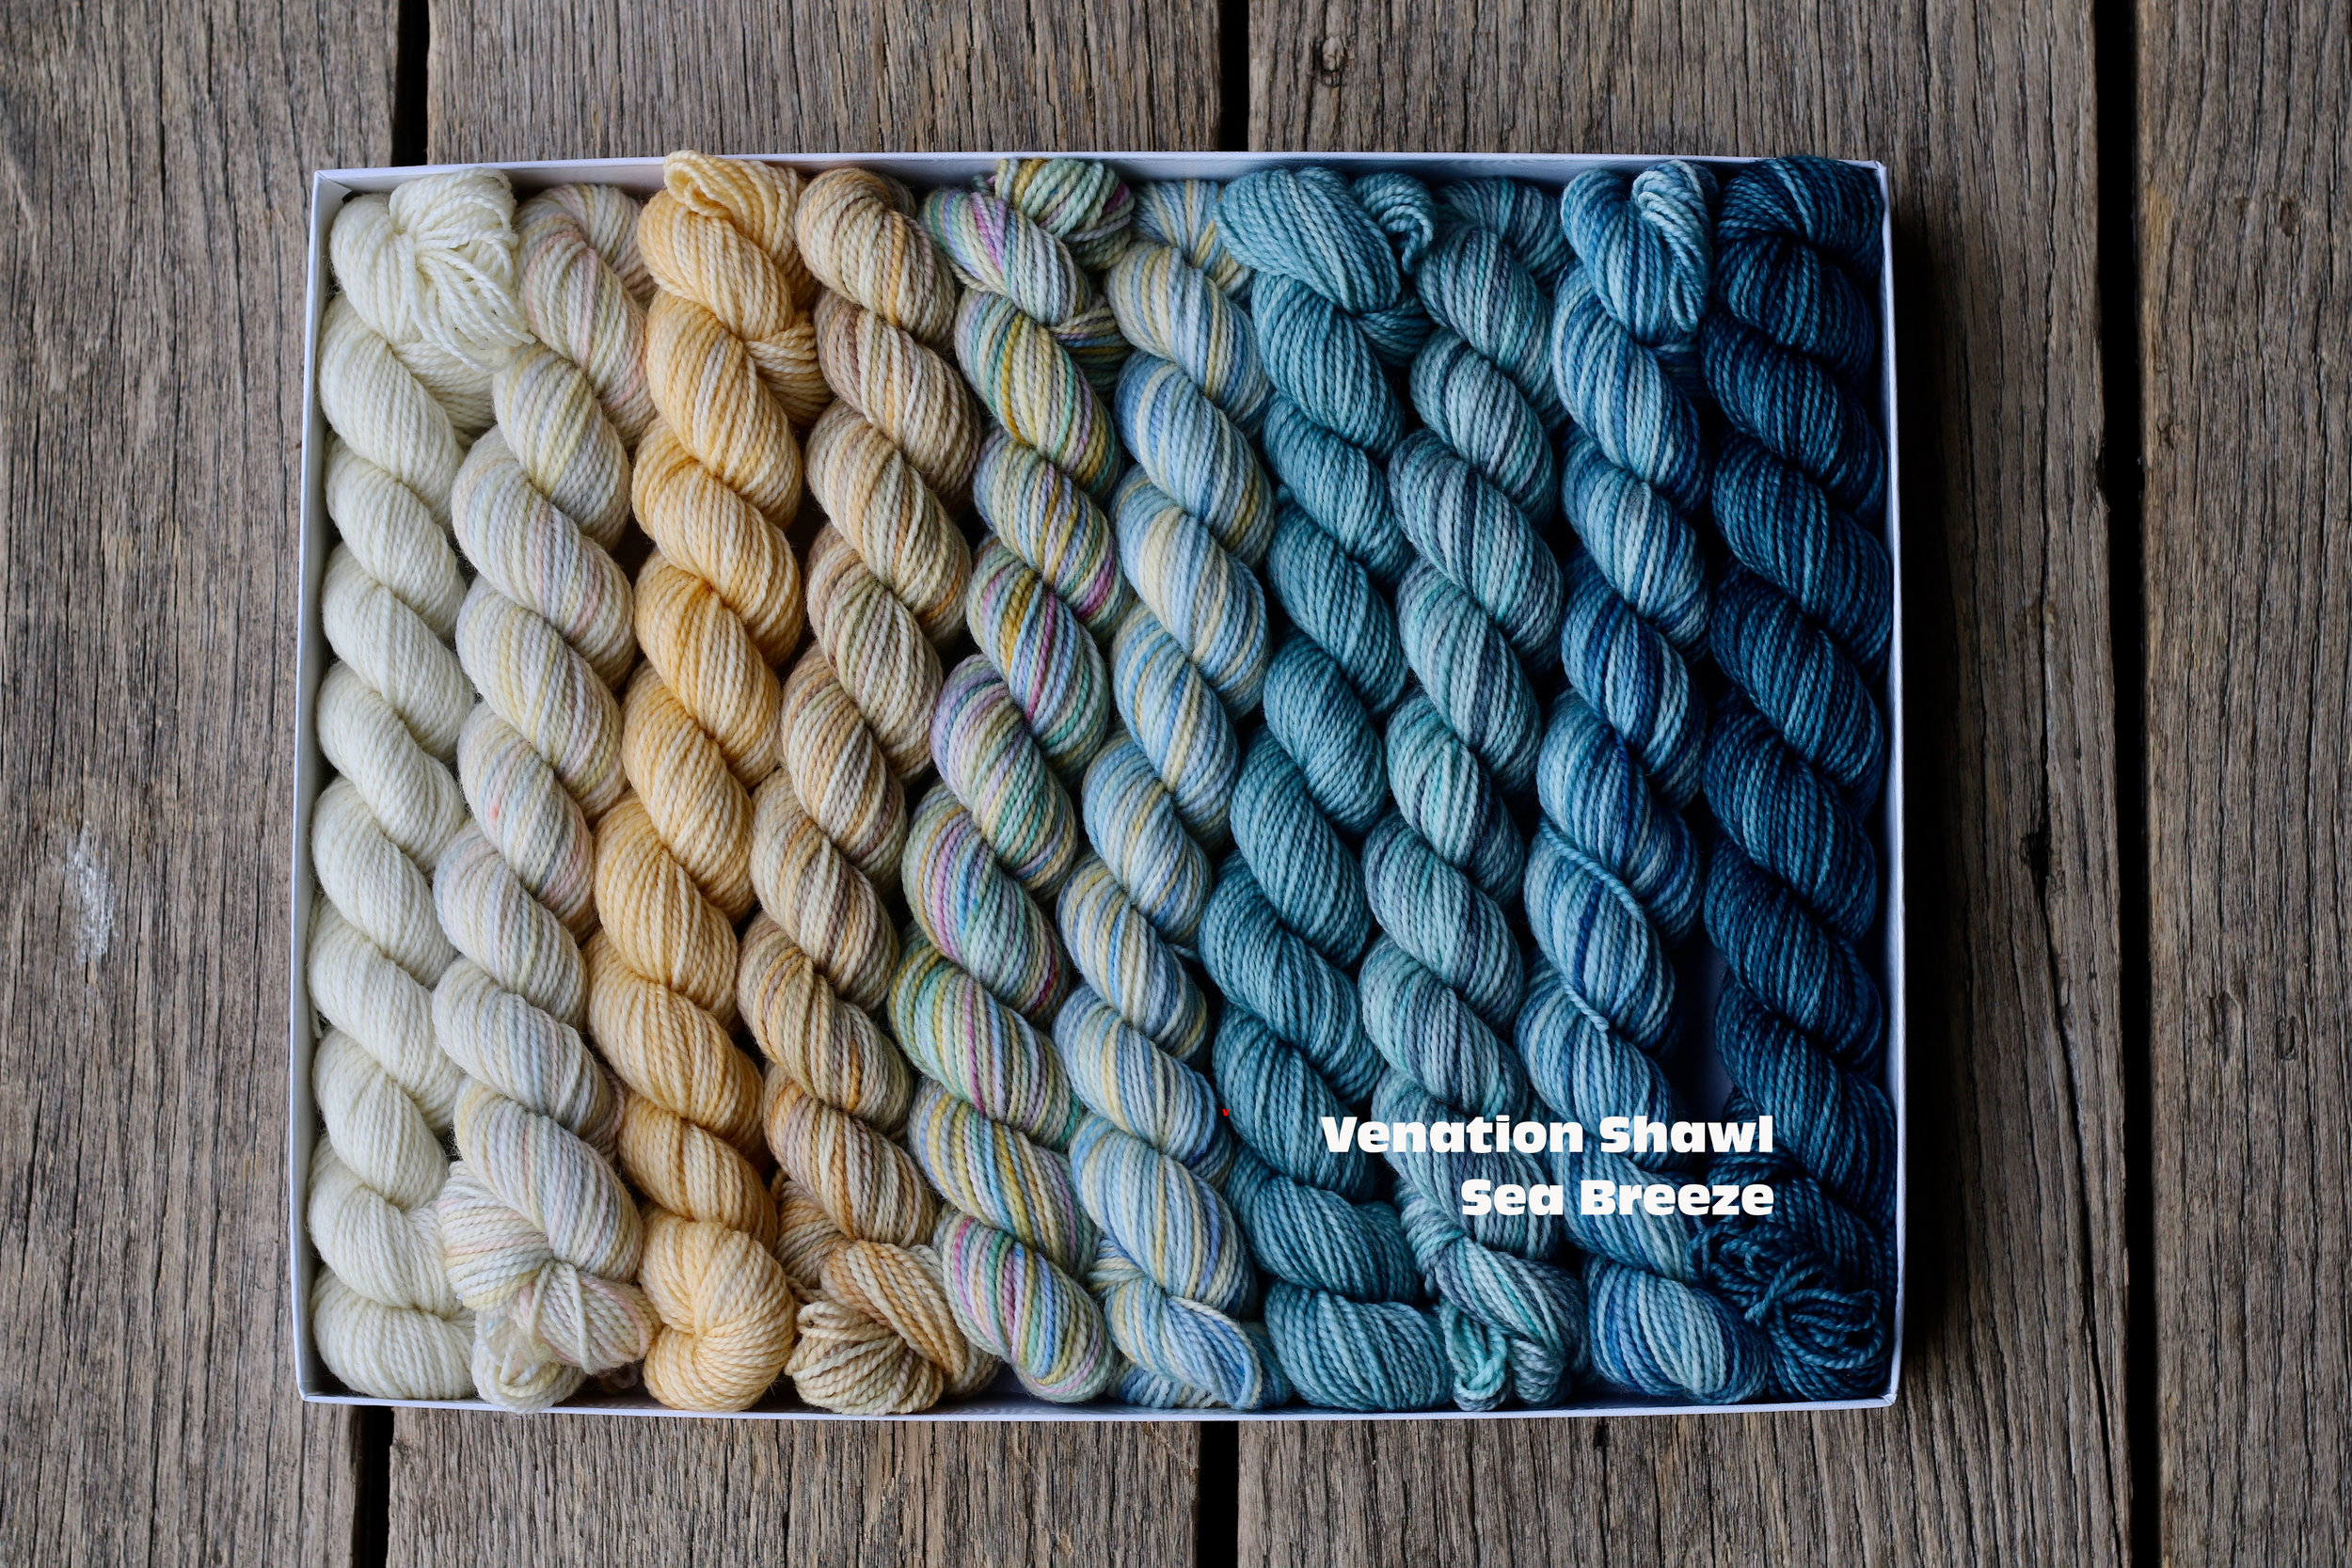 Pencil box venation shawl - Sea breeze.jpg